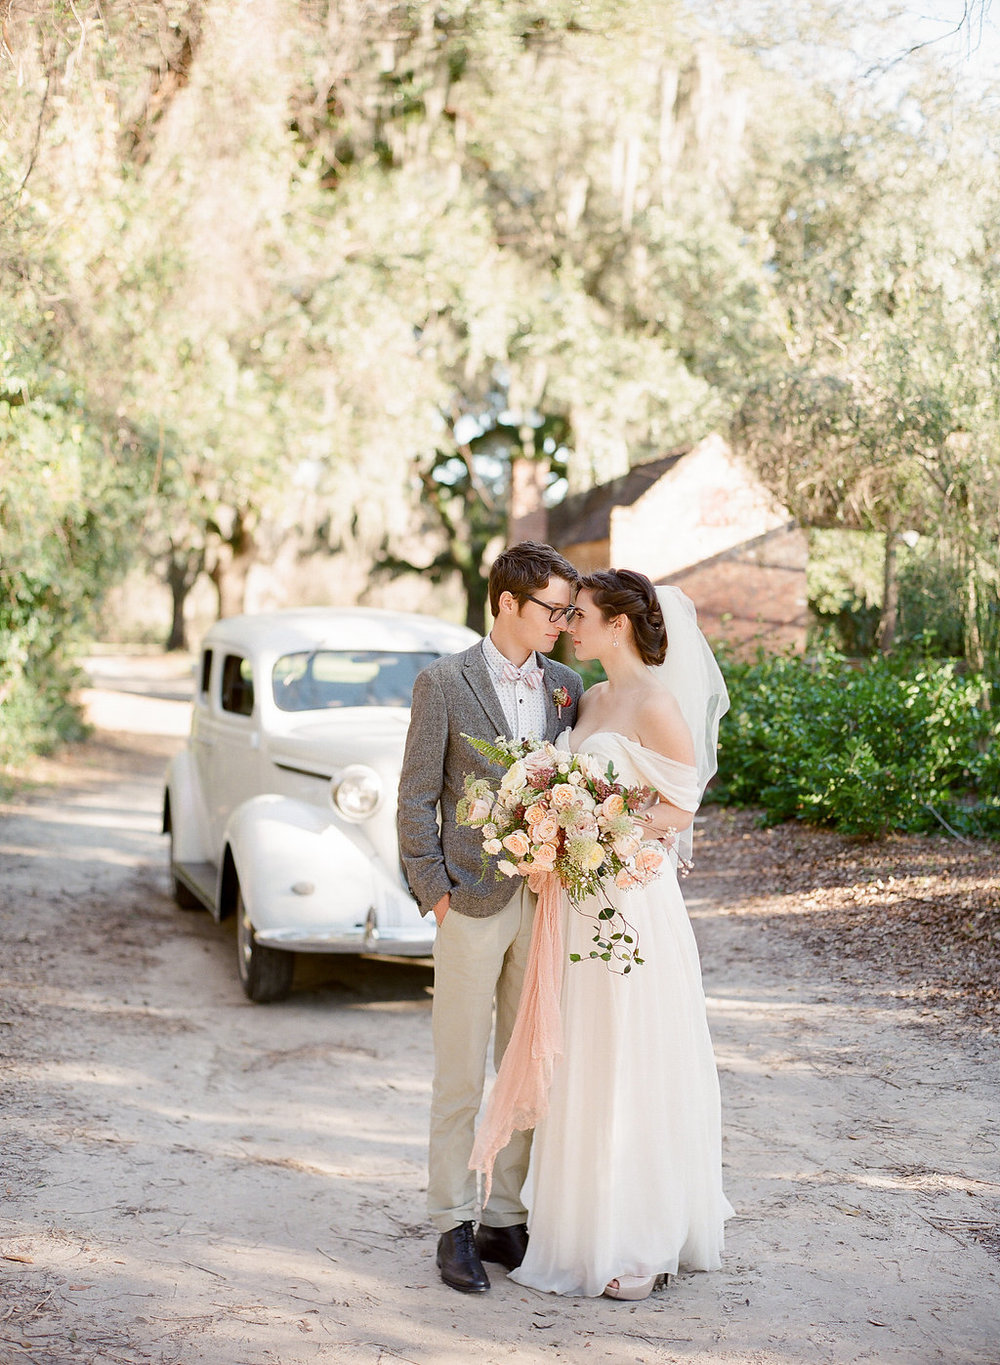 the-happy-bloom-ivory-and-beau-bridal-boutique-trendy-bride-magazine-august-floral-design-savannah-bridal-boutique-lafayette-sarah-seven-boone-hall-plantation-wedding-southern-wedding-charleston-wedding-mt-pleasent-wedding-3.jpg